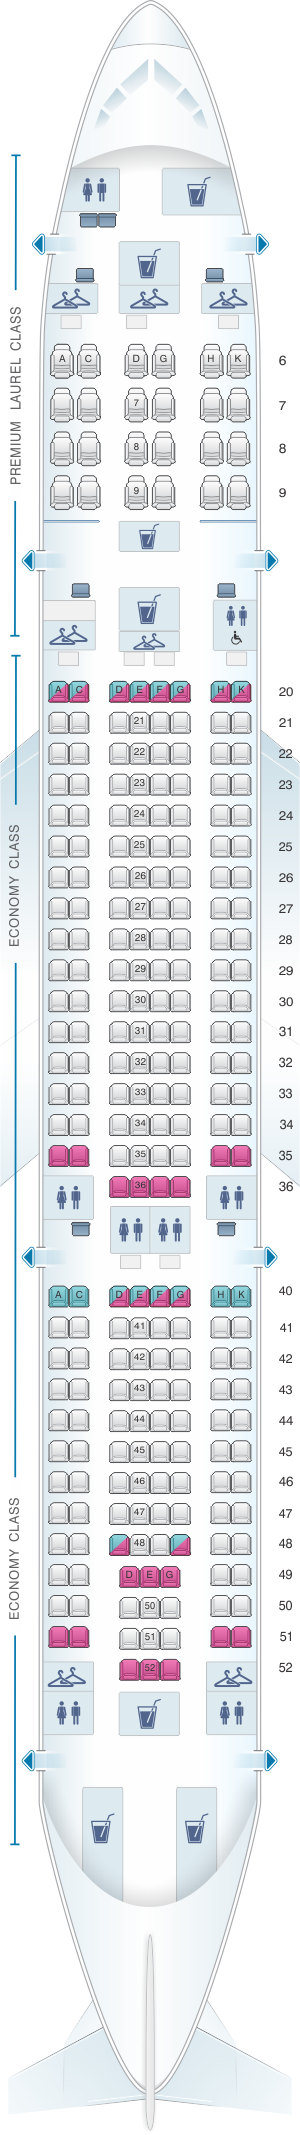 Seat map for EVA Air Airbus A330 200